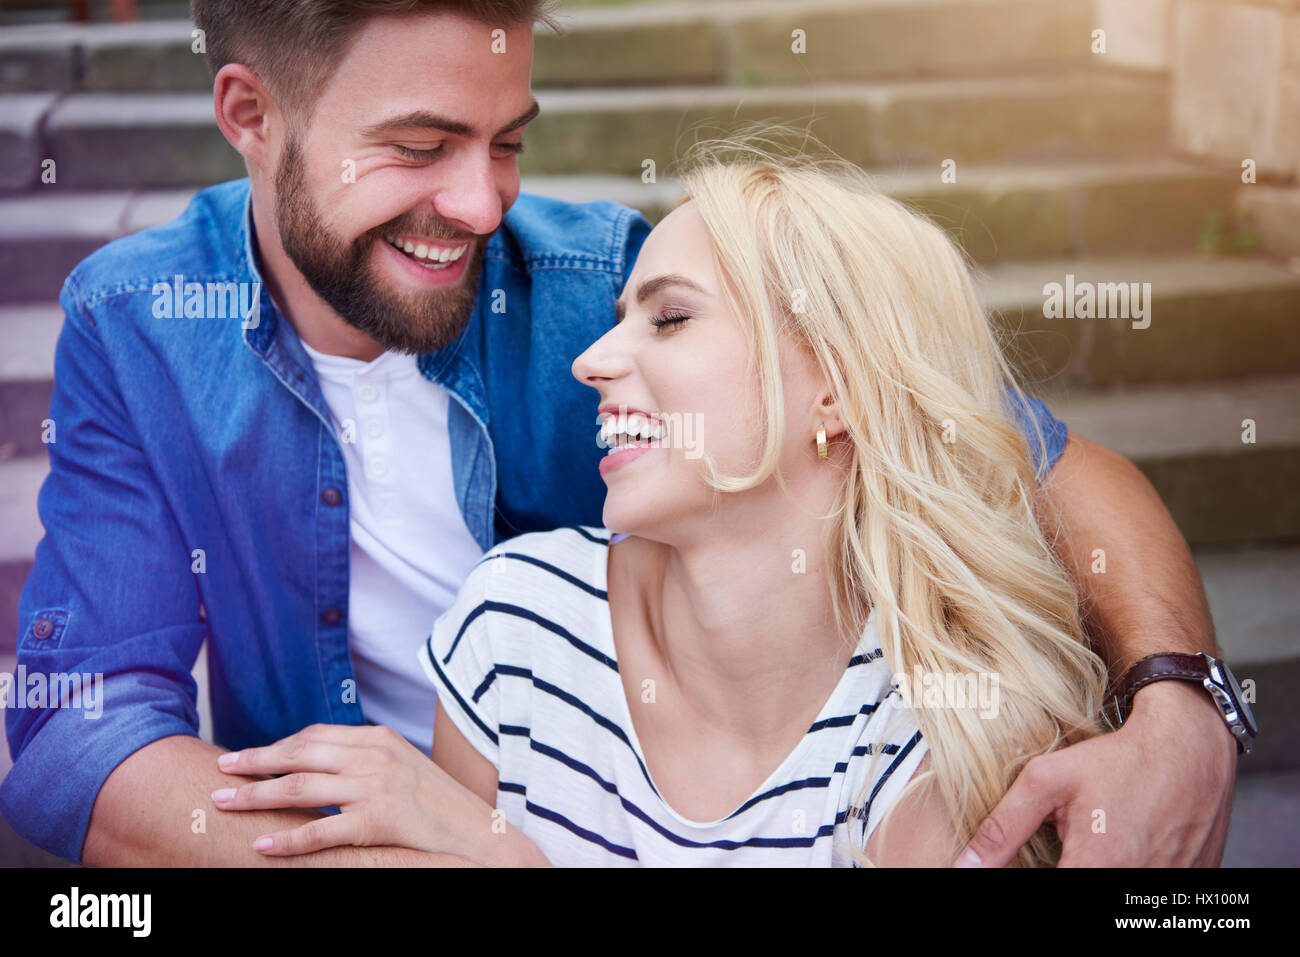 Couple laughing loudly on the steps - Stock Image